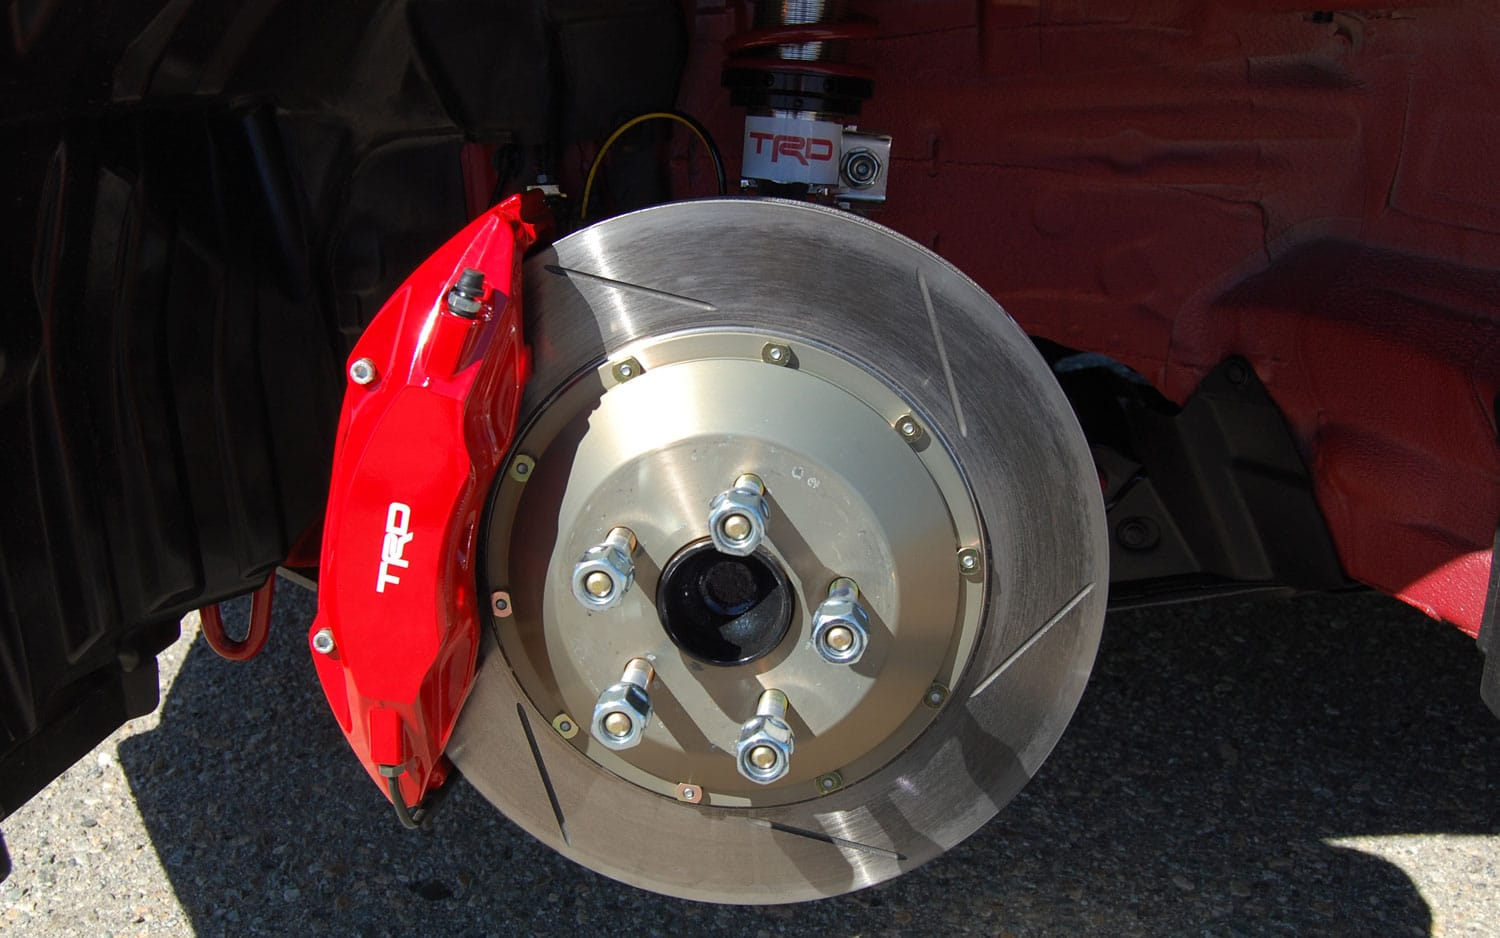 How To Correctly Bed In Your Brakes on a Track or Test Day